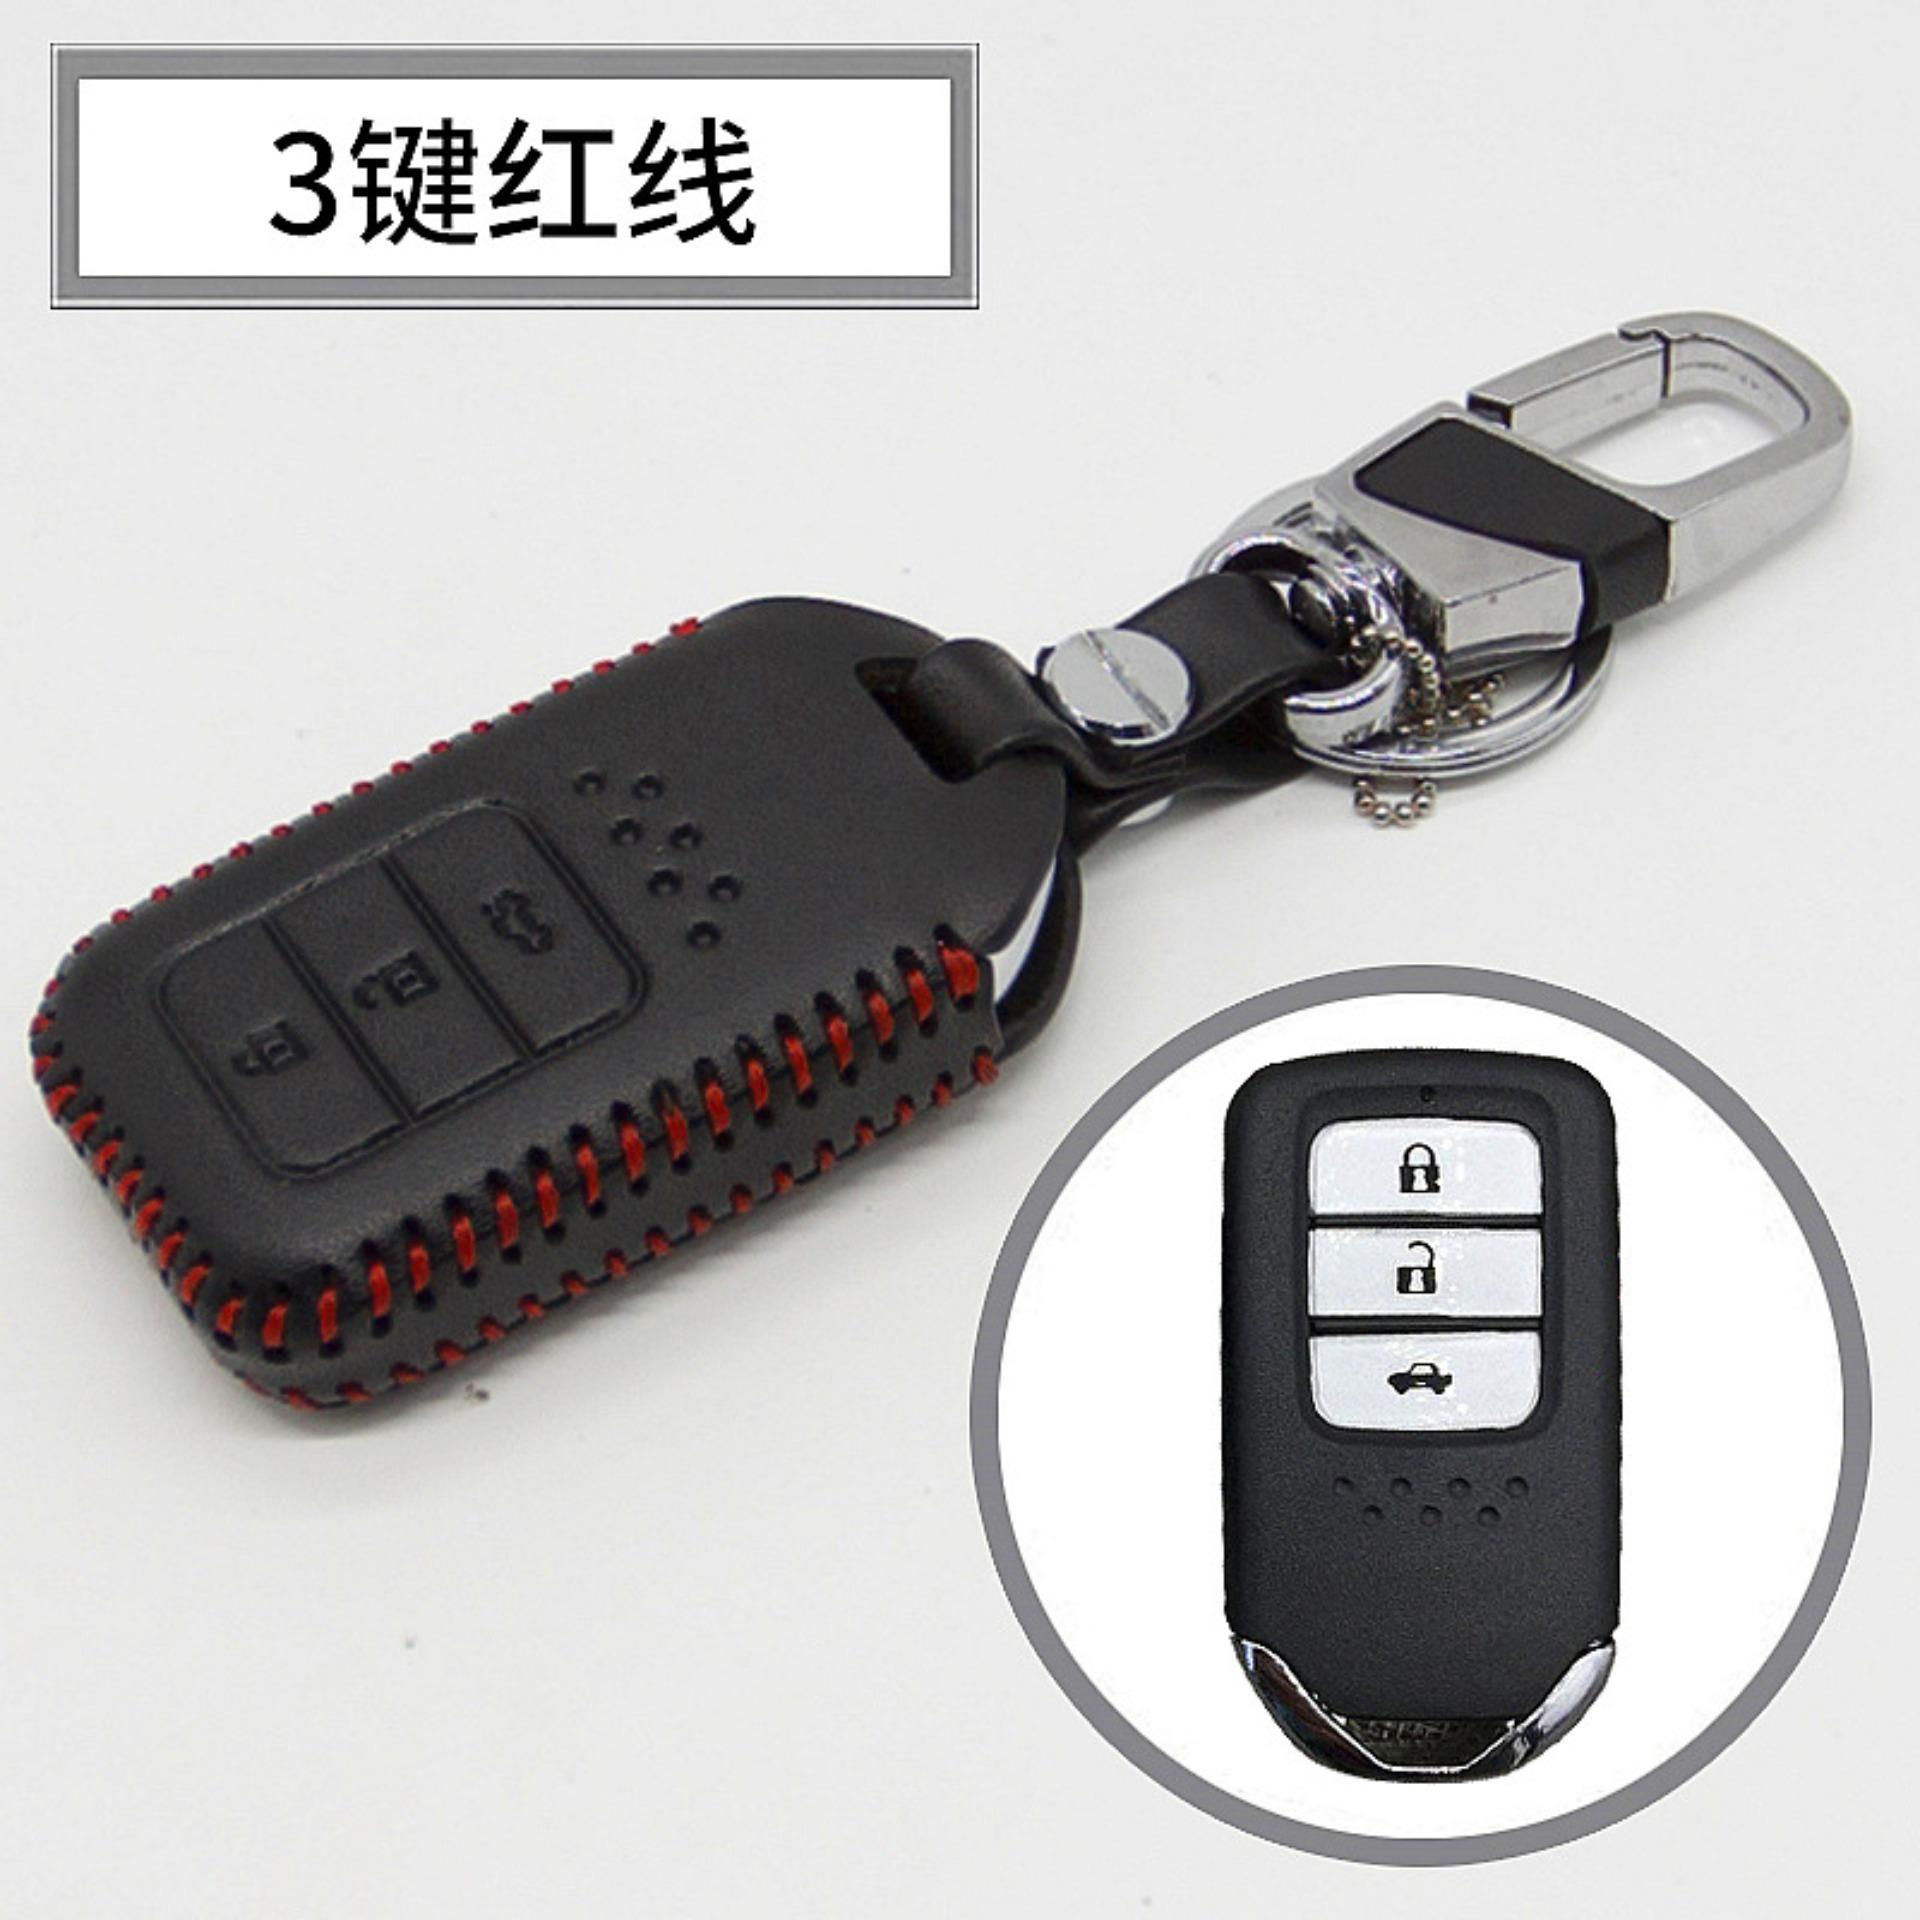 Buy Honda Hrv Crv Brv 2014 2017 Keyless Remote Leather Car Key Cover Case Black Bottom Red Edge Intl Cheap On China